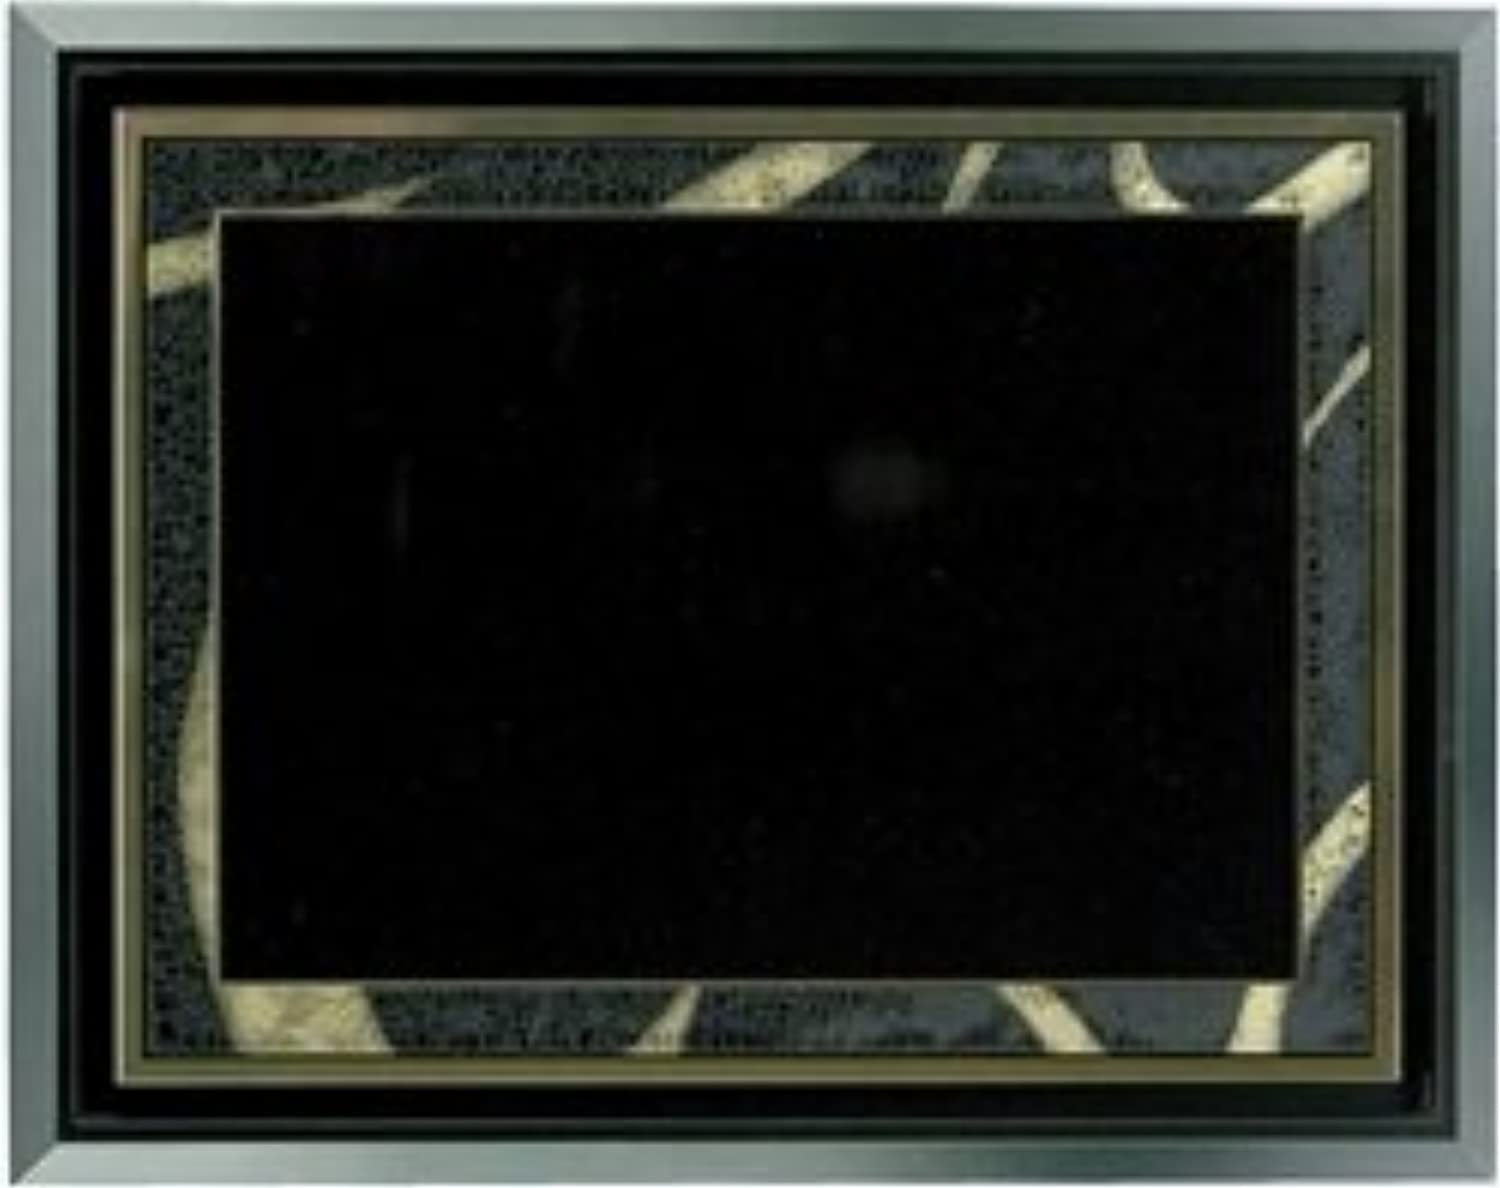 AS457, 5 x 7 Black gold Plate in Floater Frame